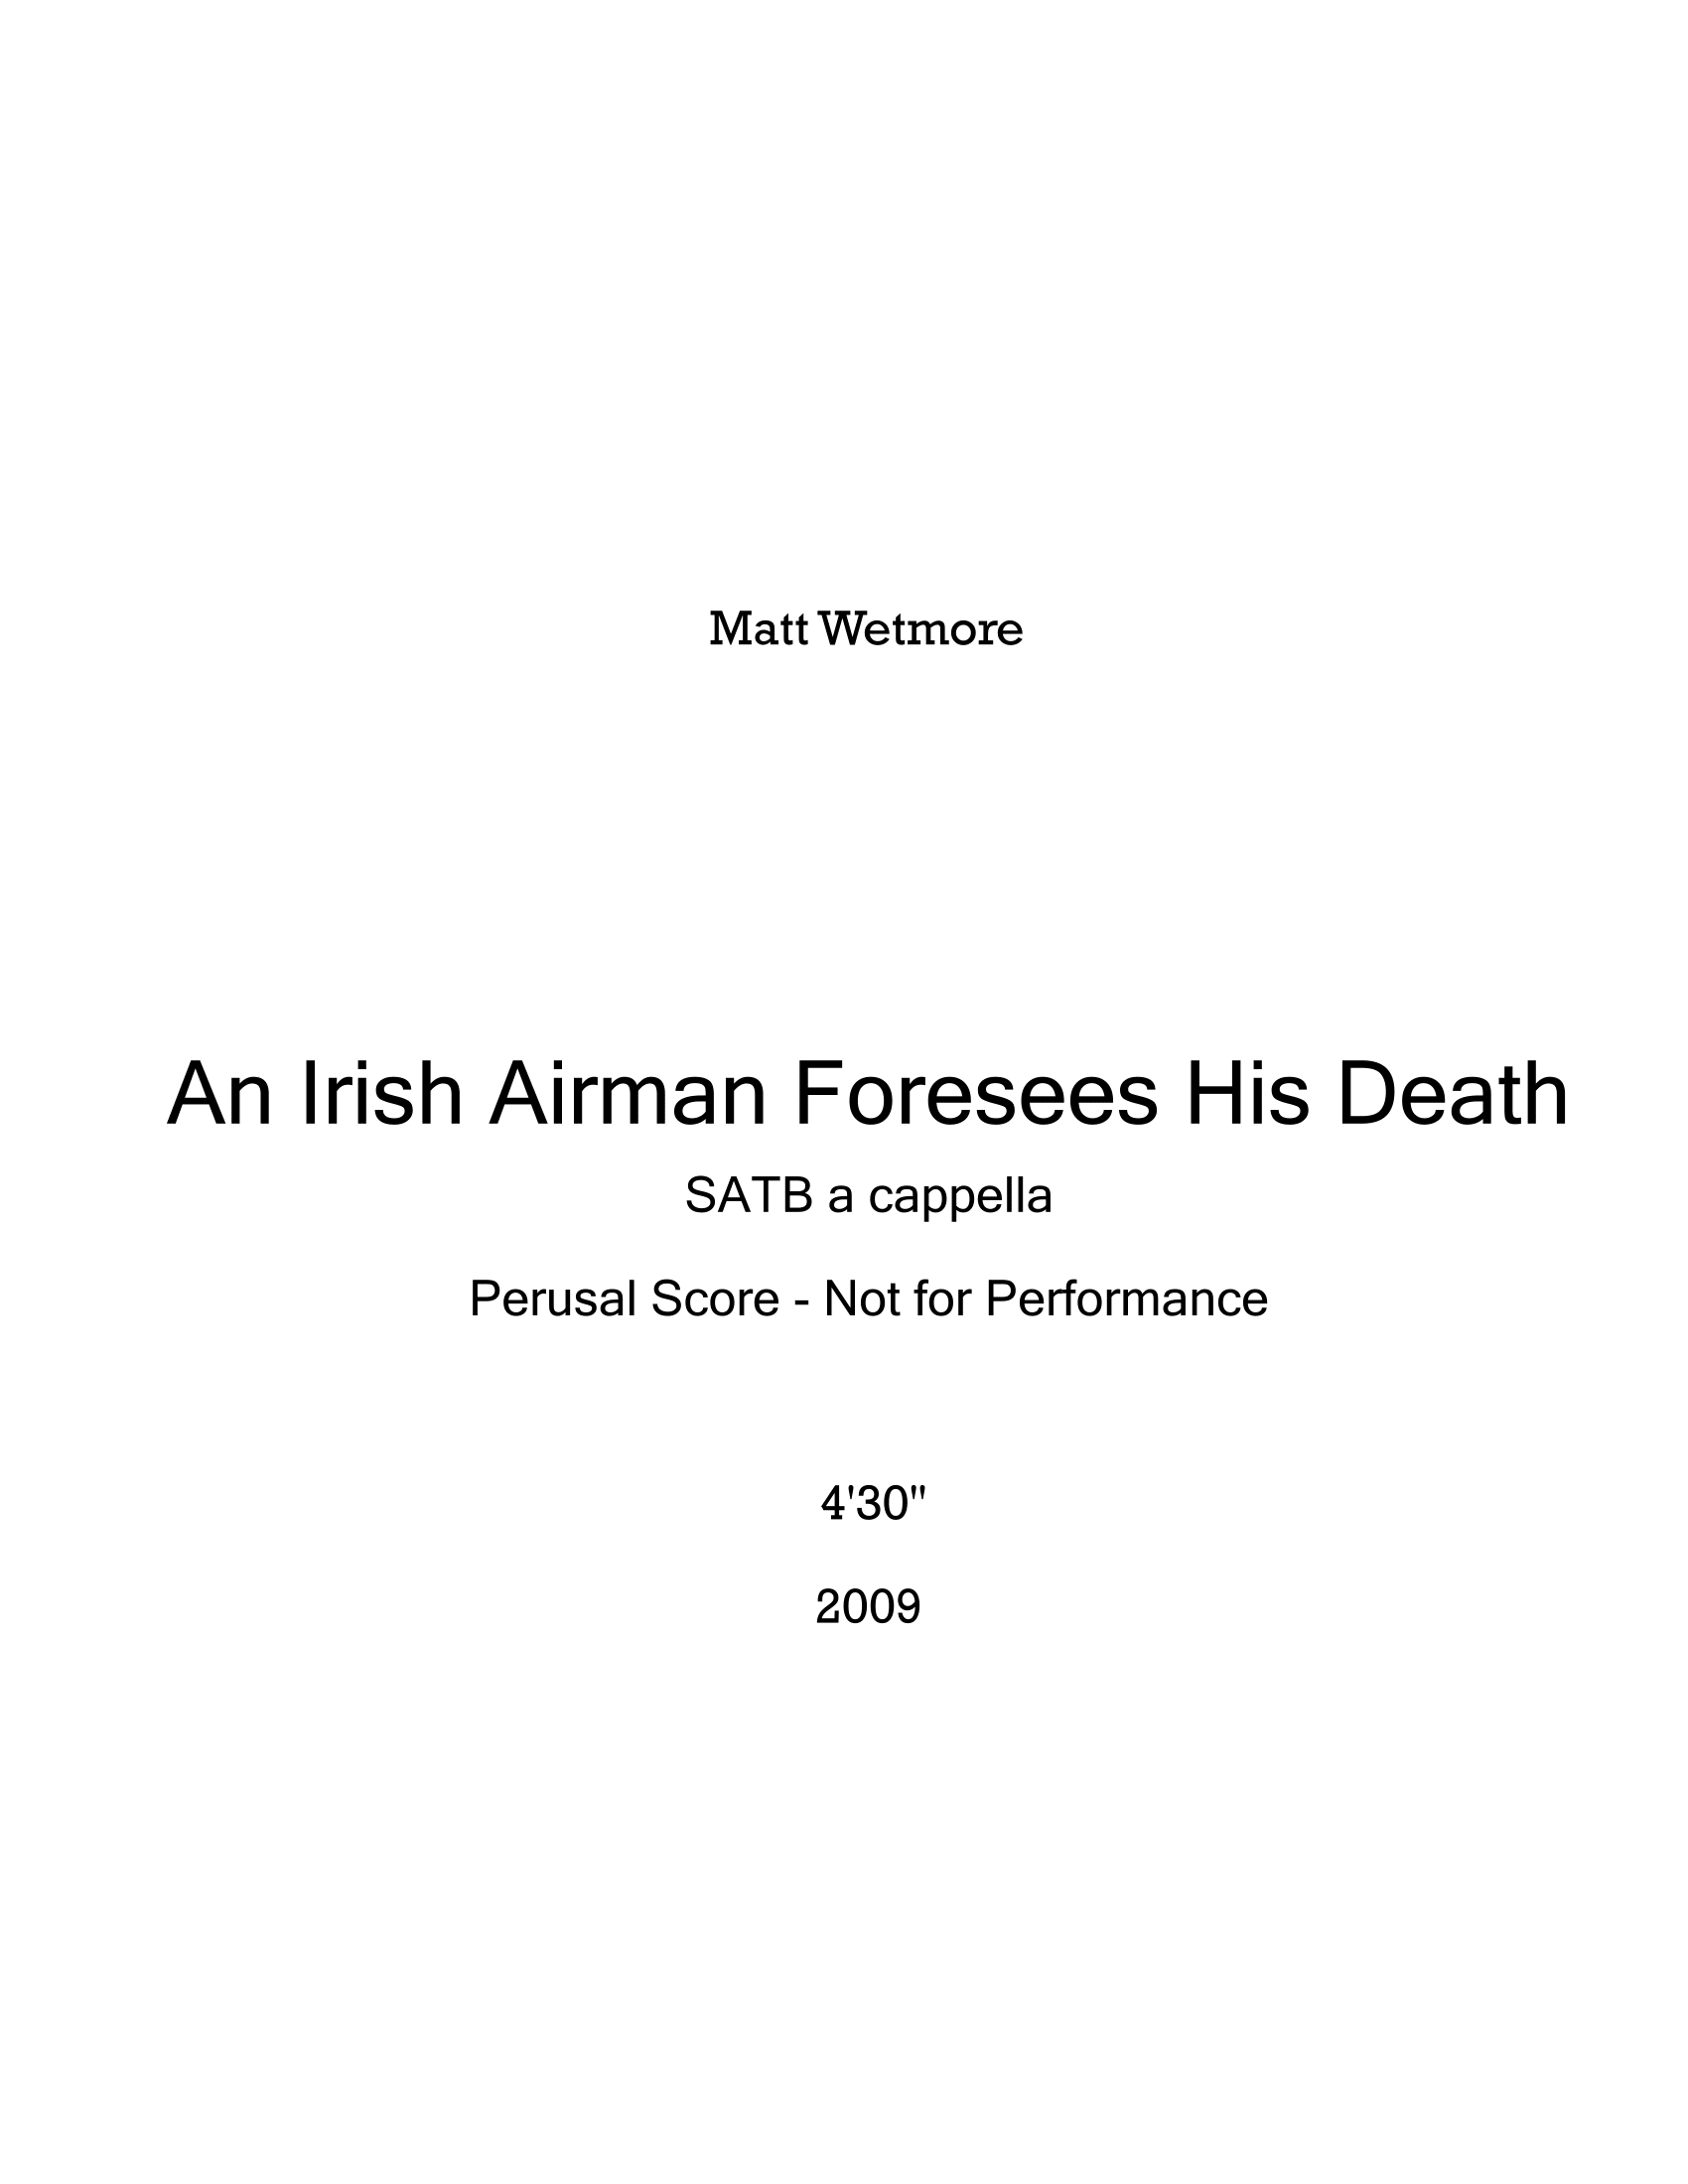 An Irish Airman Foresees His Death Perusal-1.png